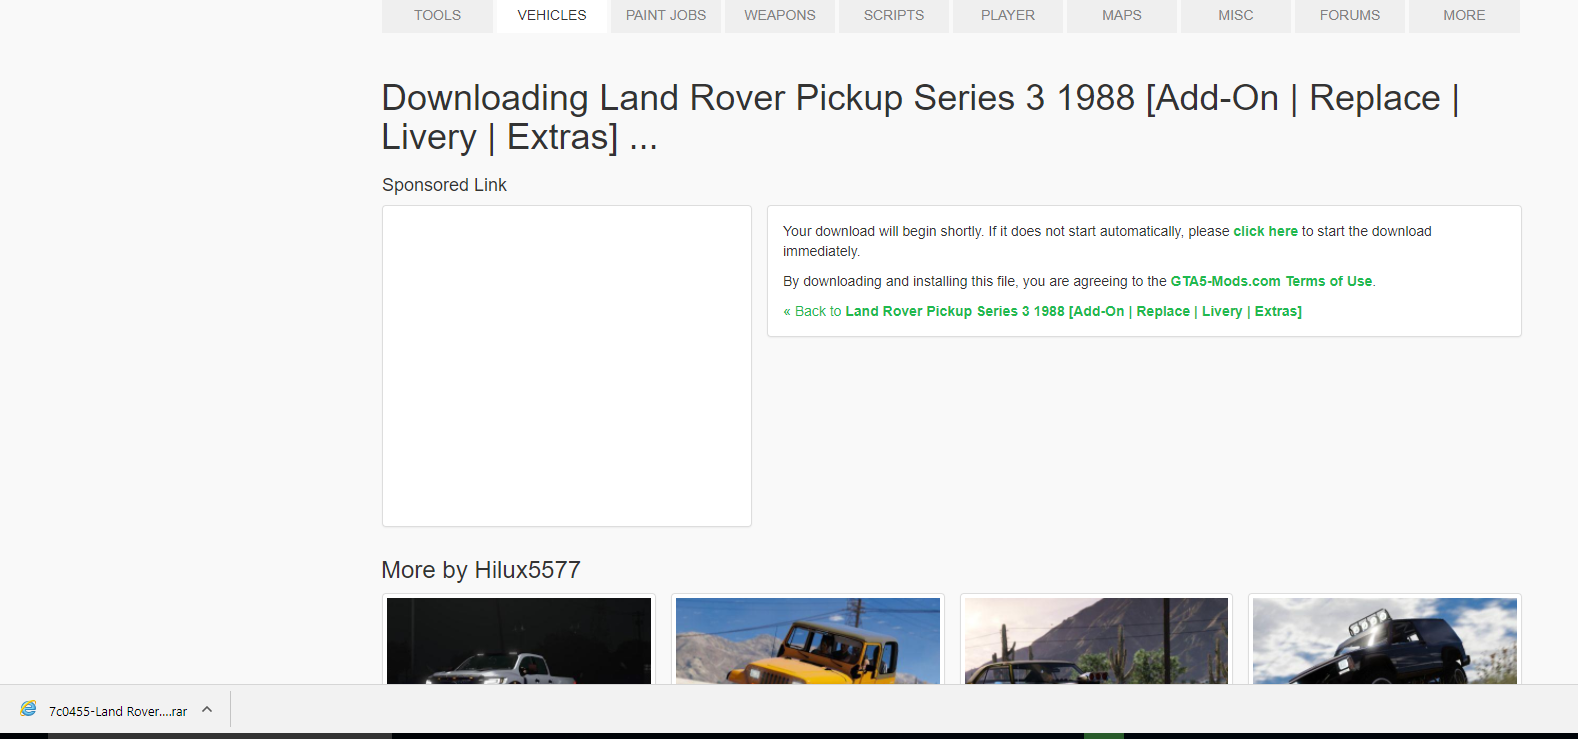 0_1503435241556_land rover.PNG